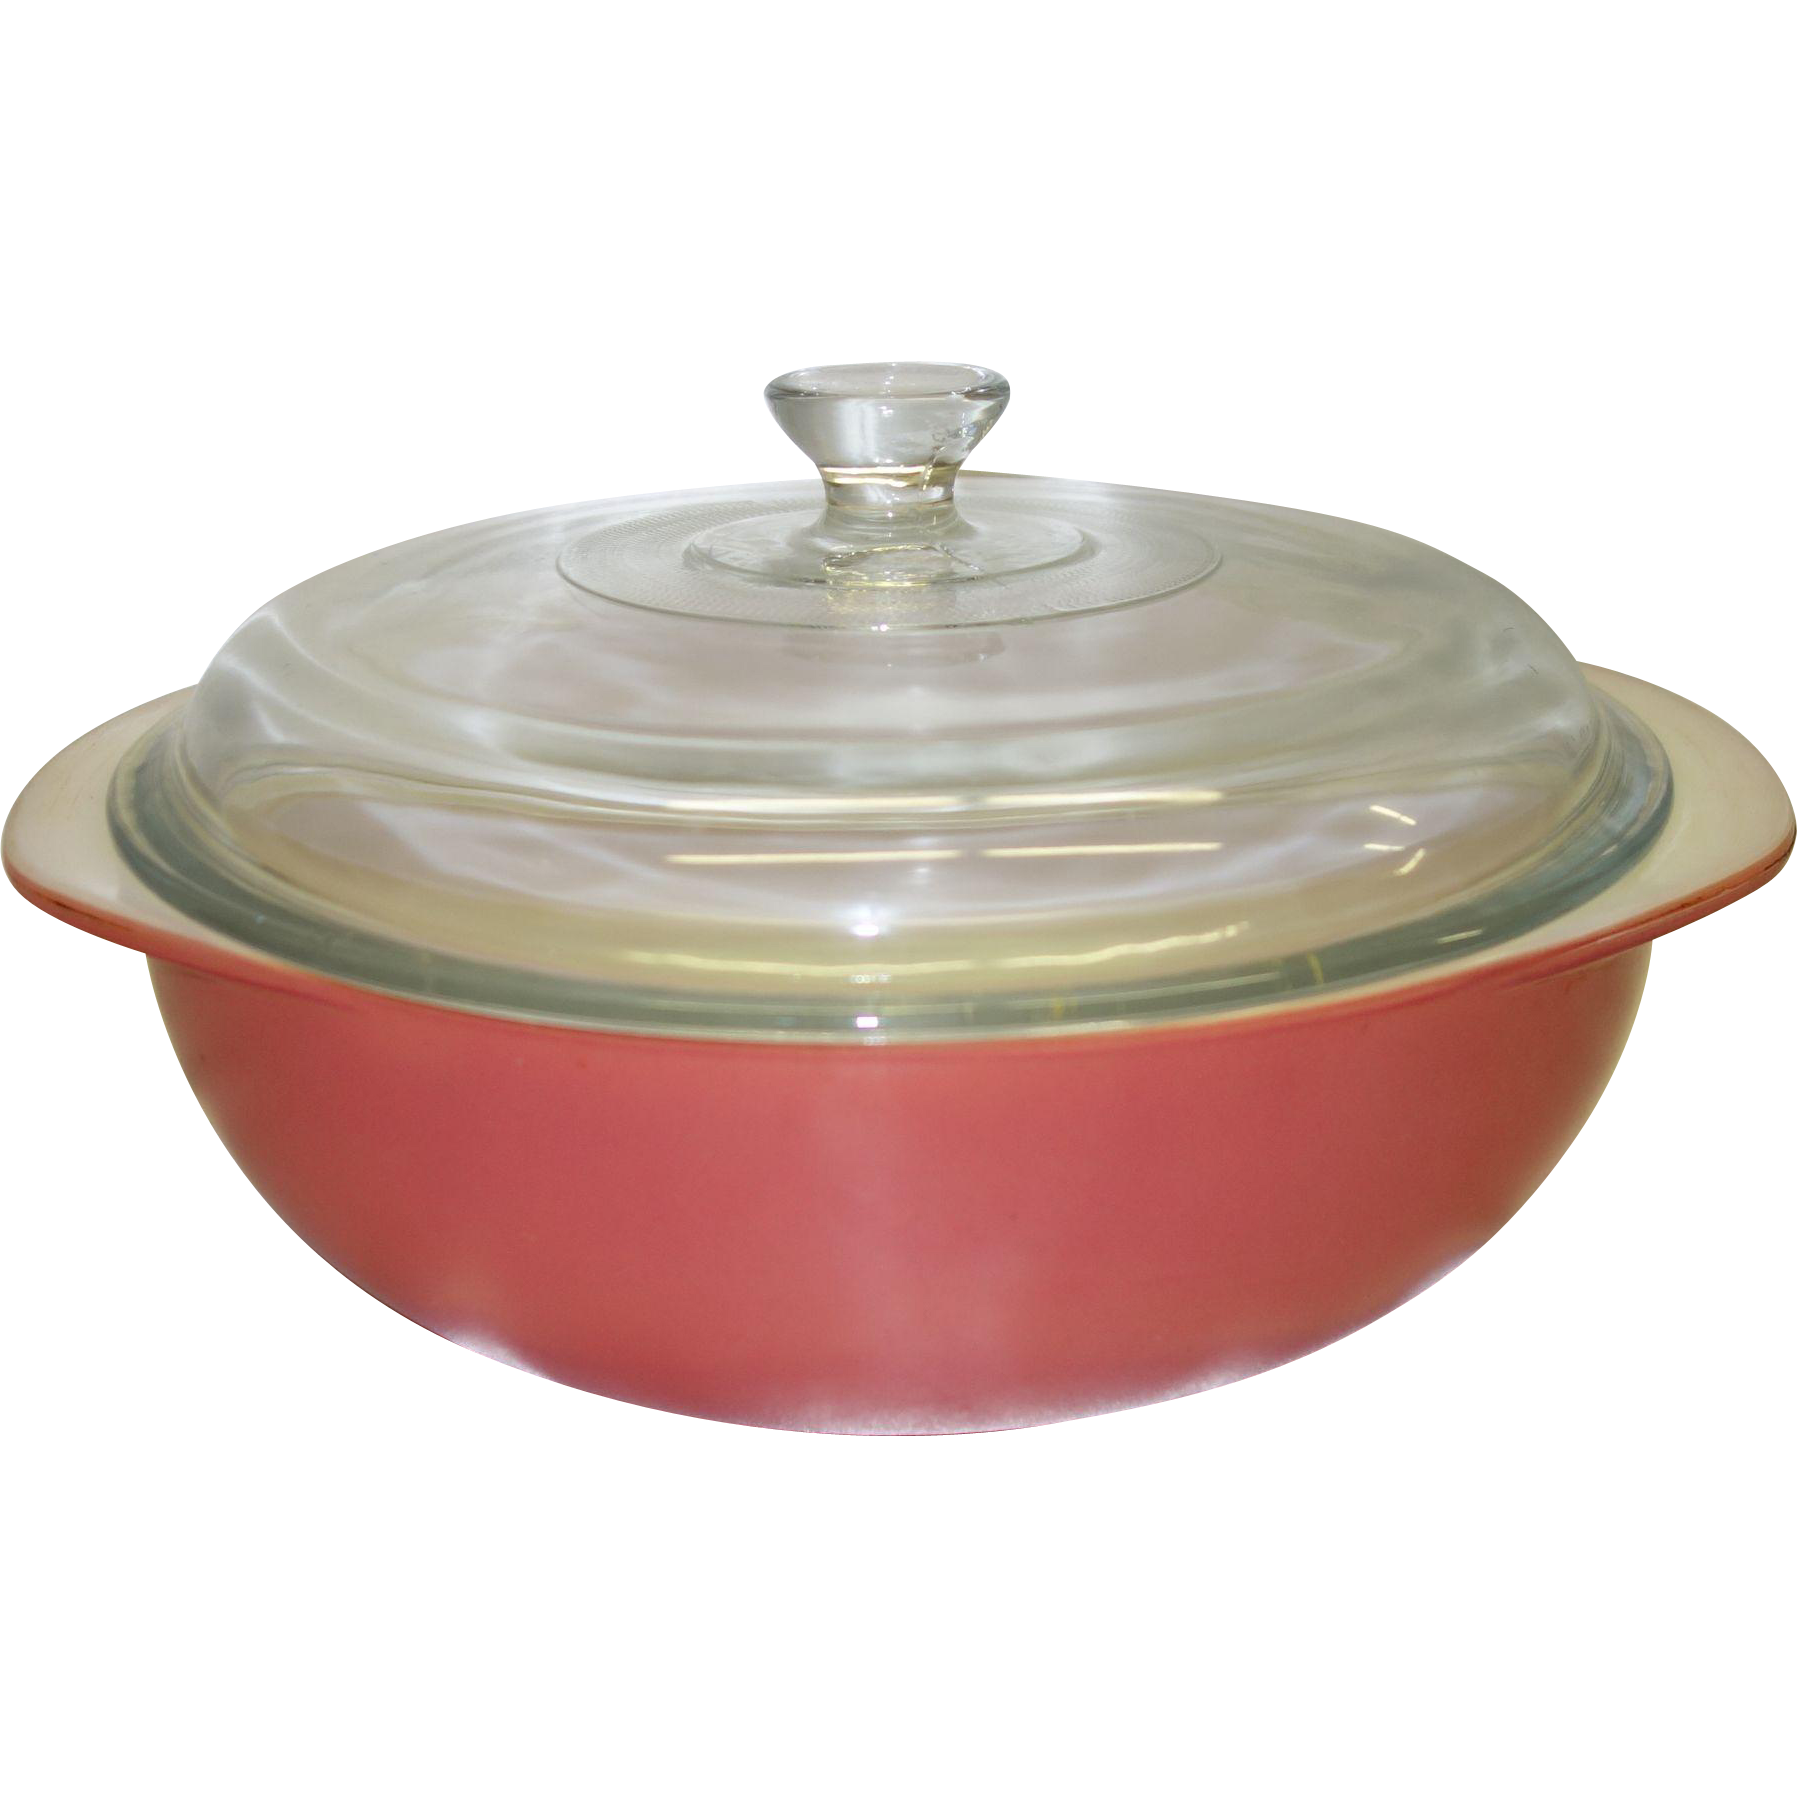 Vintage Pyrex Fired-On Flamingo 2 Qt. Covered Casserole